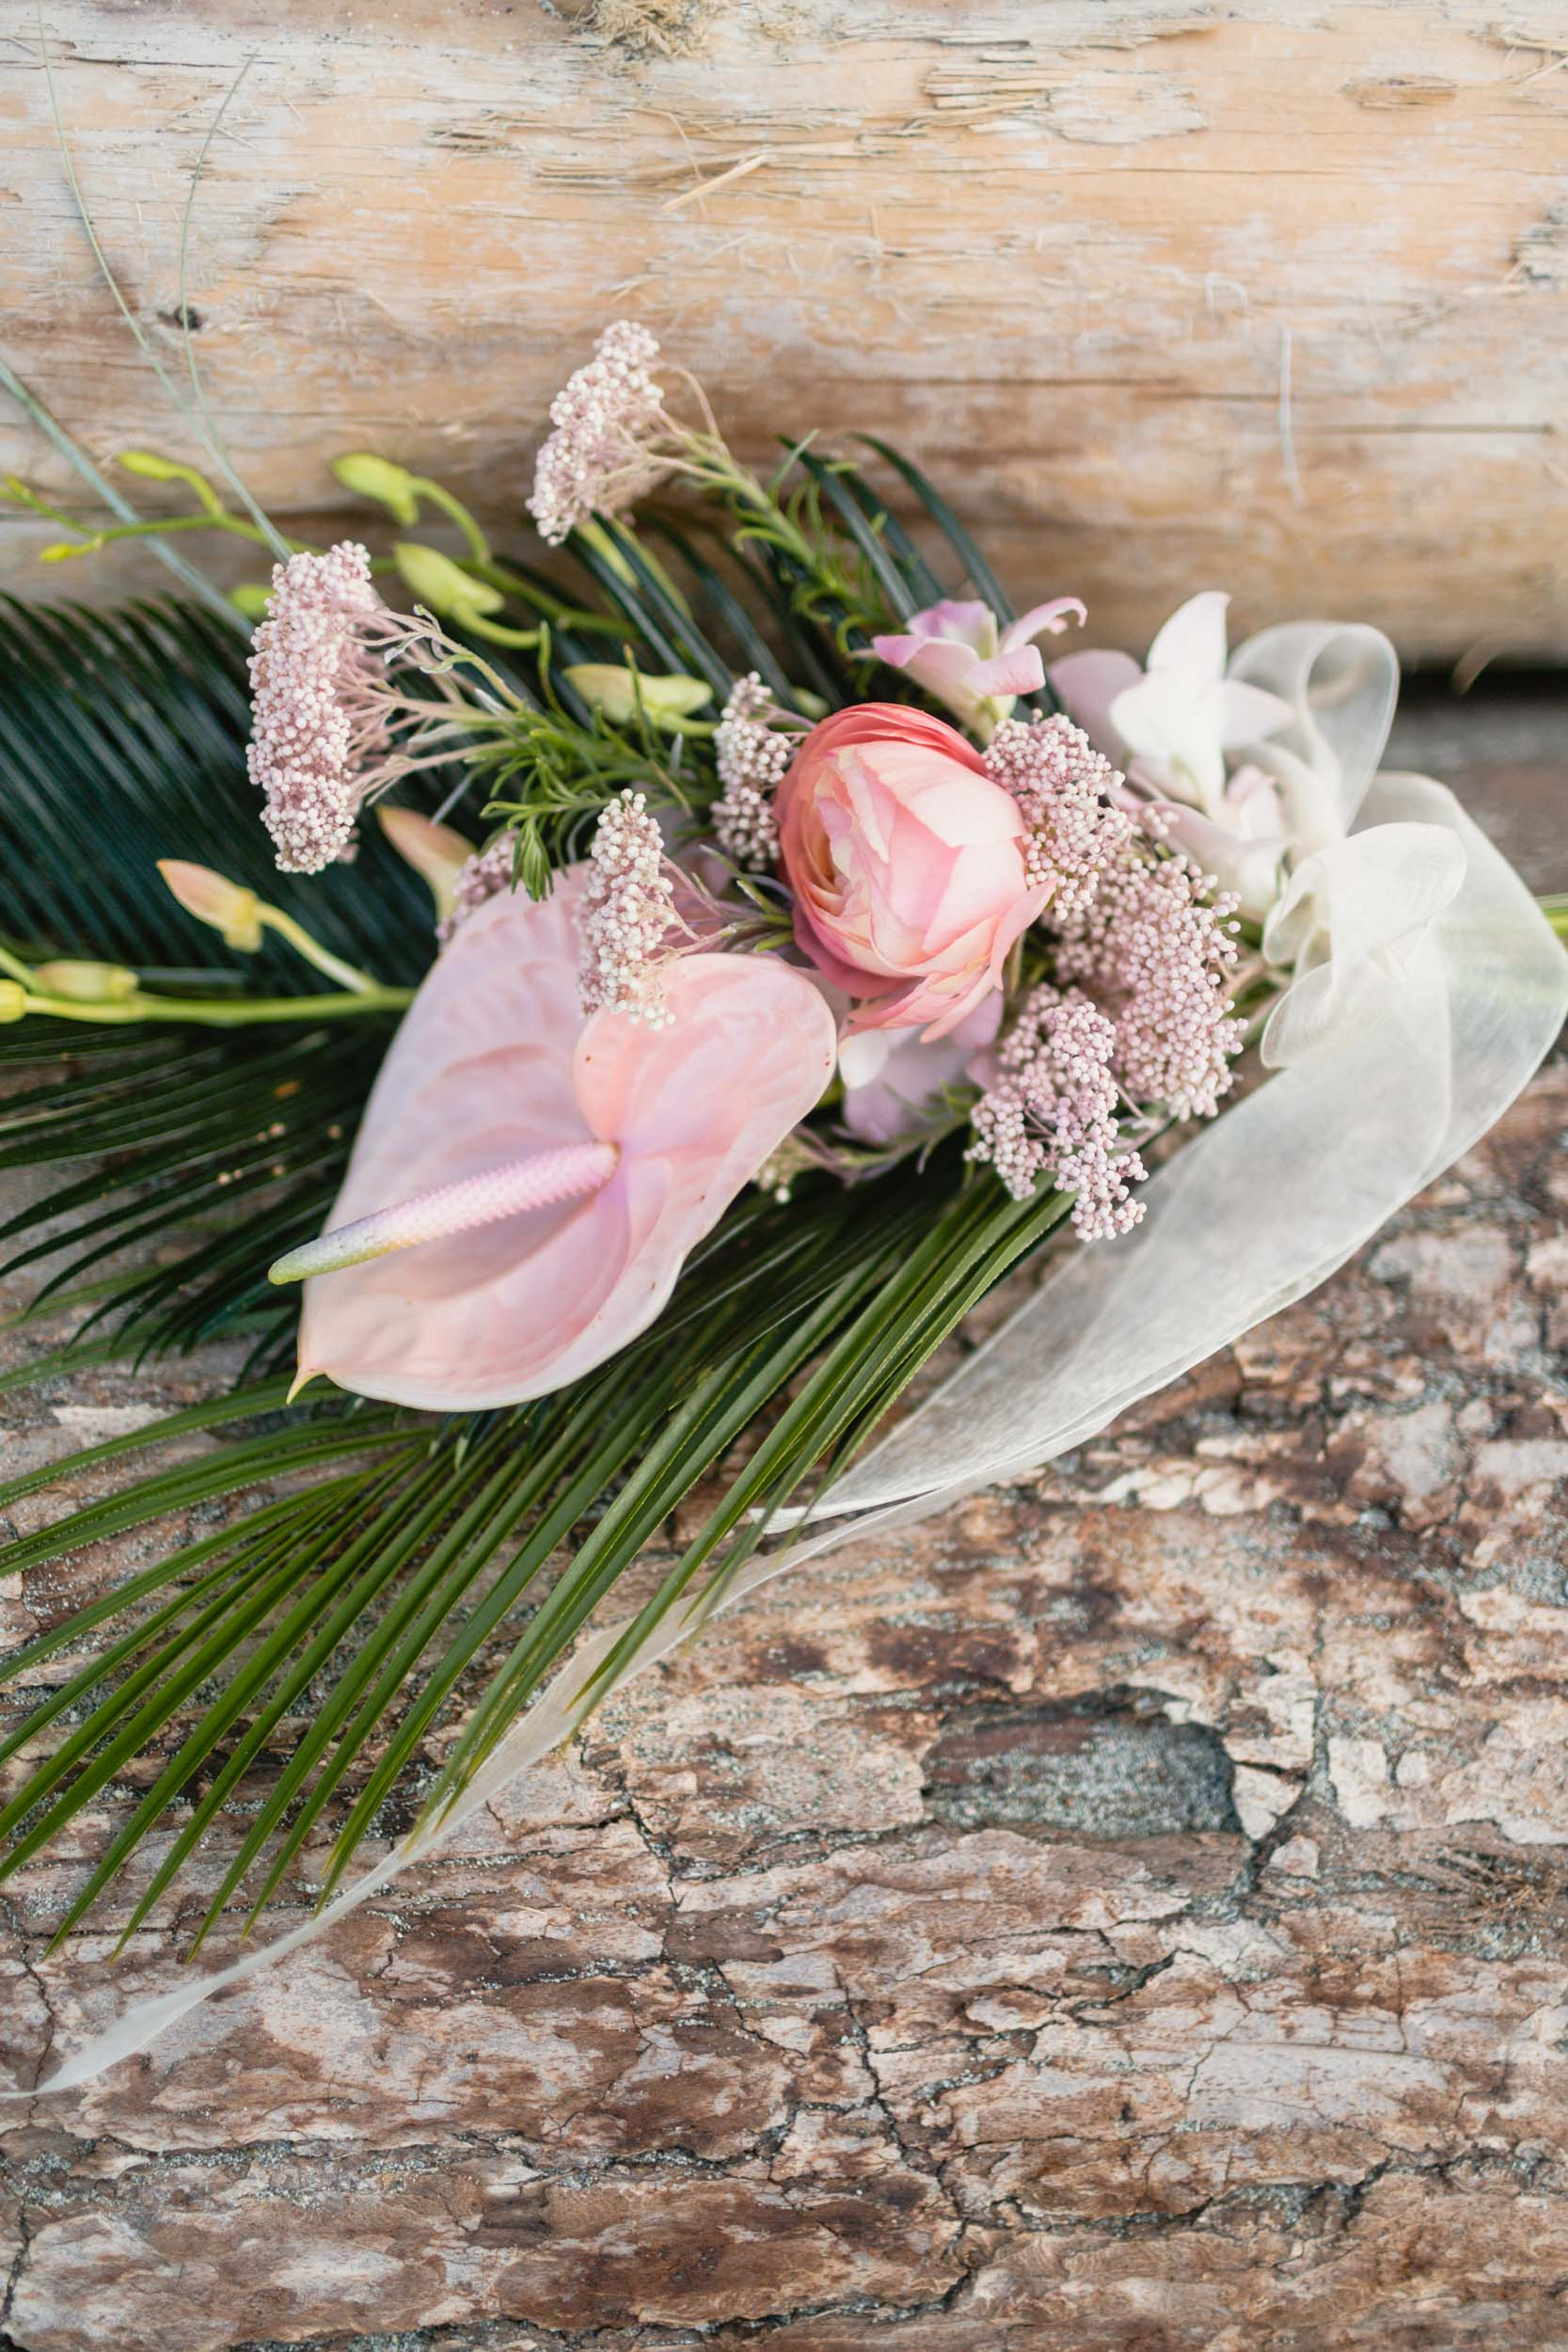 Bouquet resting on logs